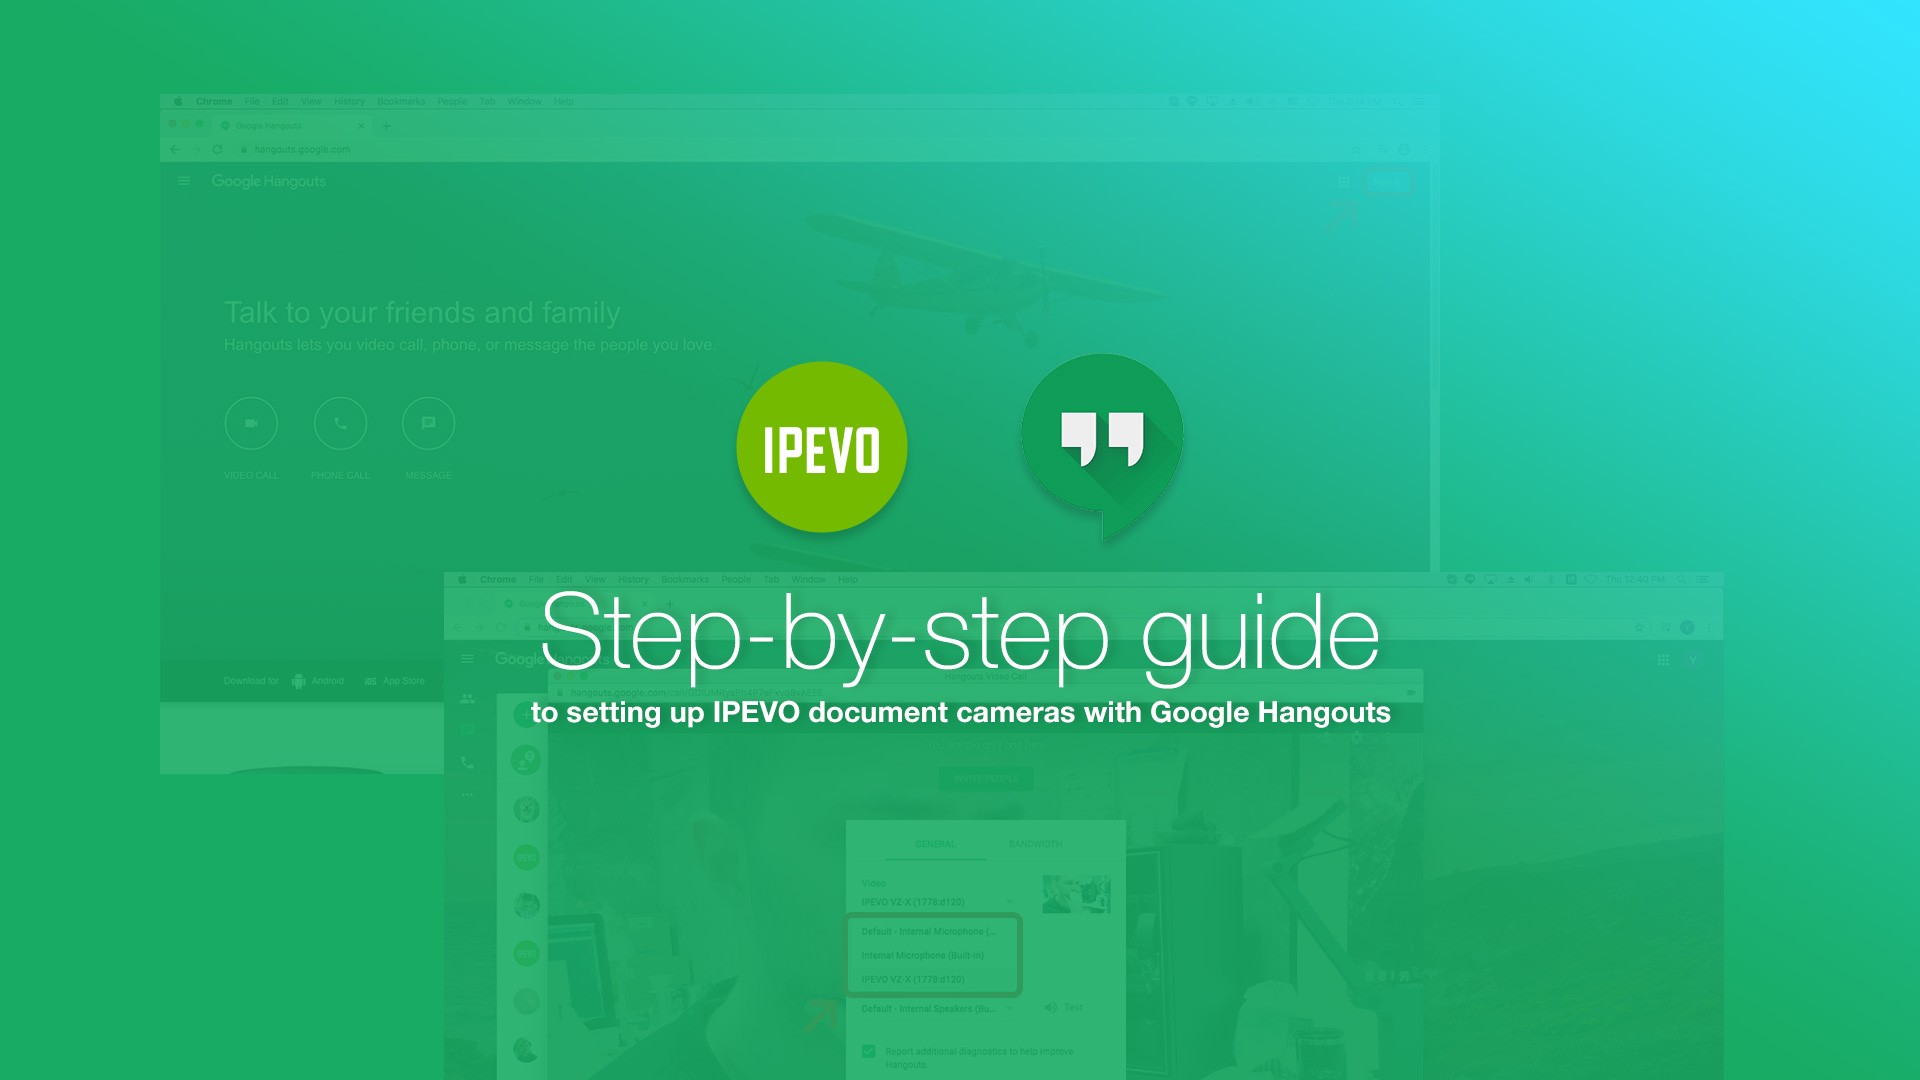 Step-by-step guide to setting up IPEVO document cameras with Google Hangouts